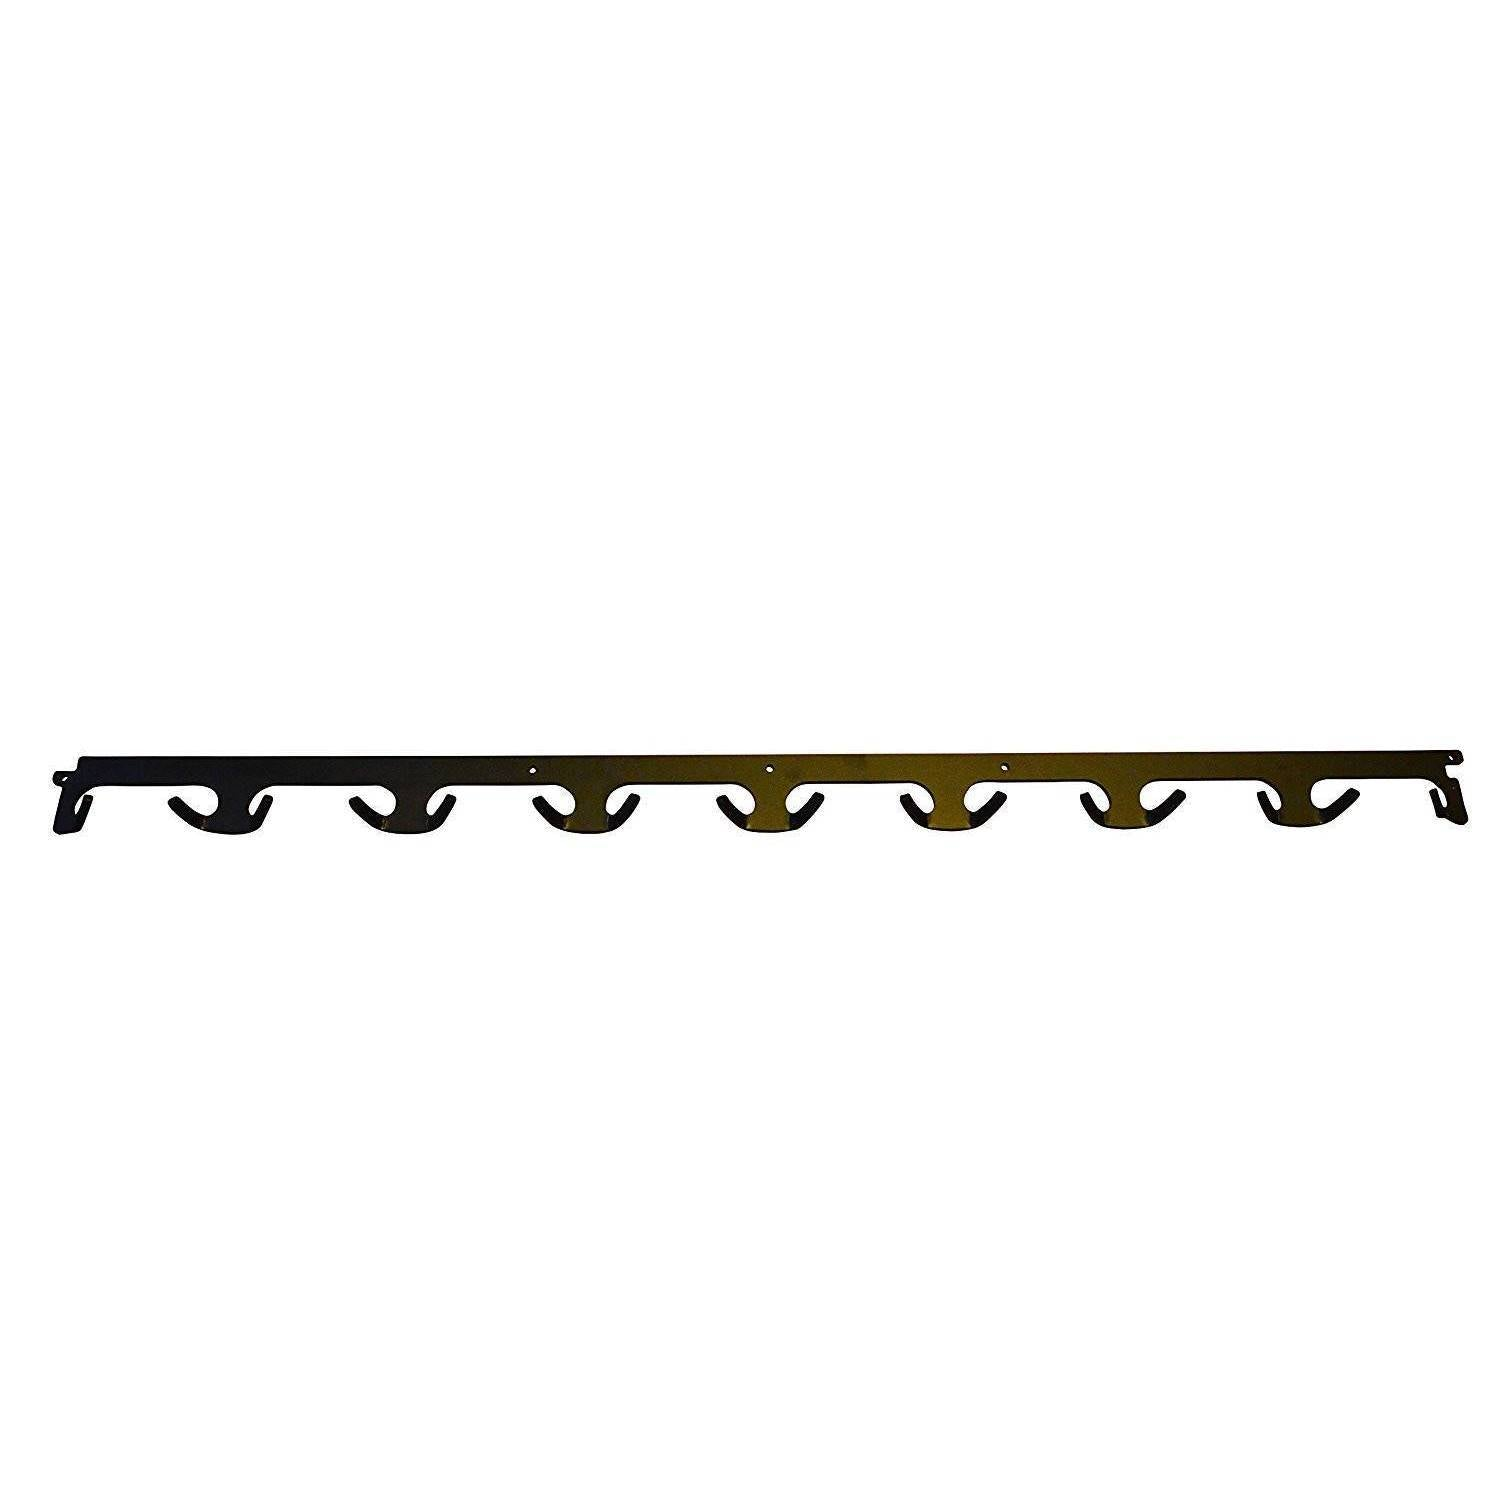 "OFG - Black Modern 27"" Long Metal Industrial Coat Rack w/ 9 Hooks"